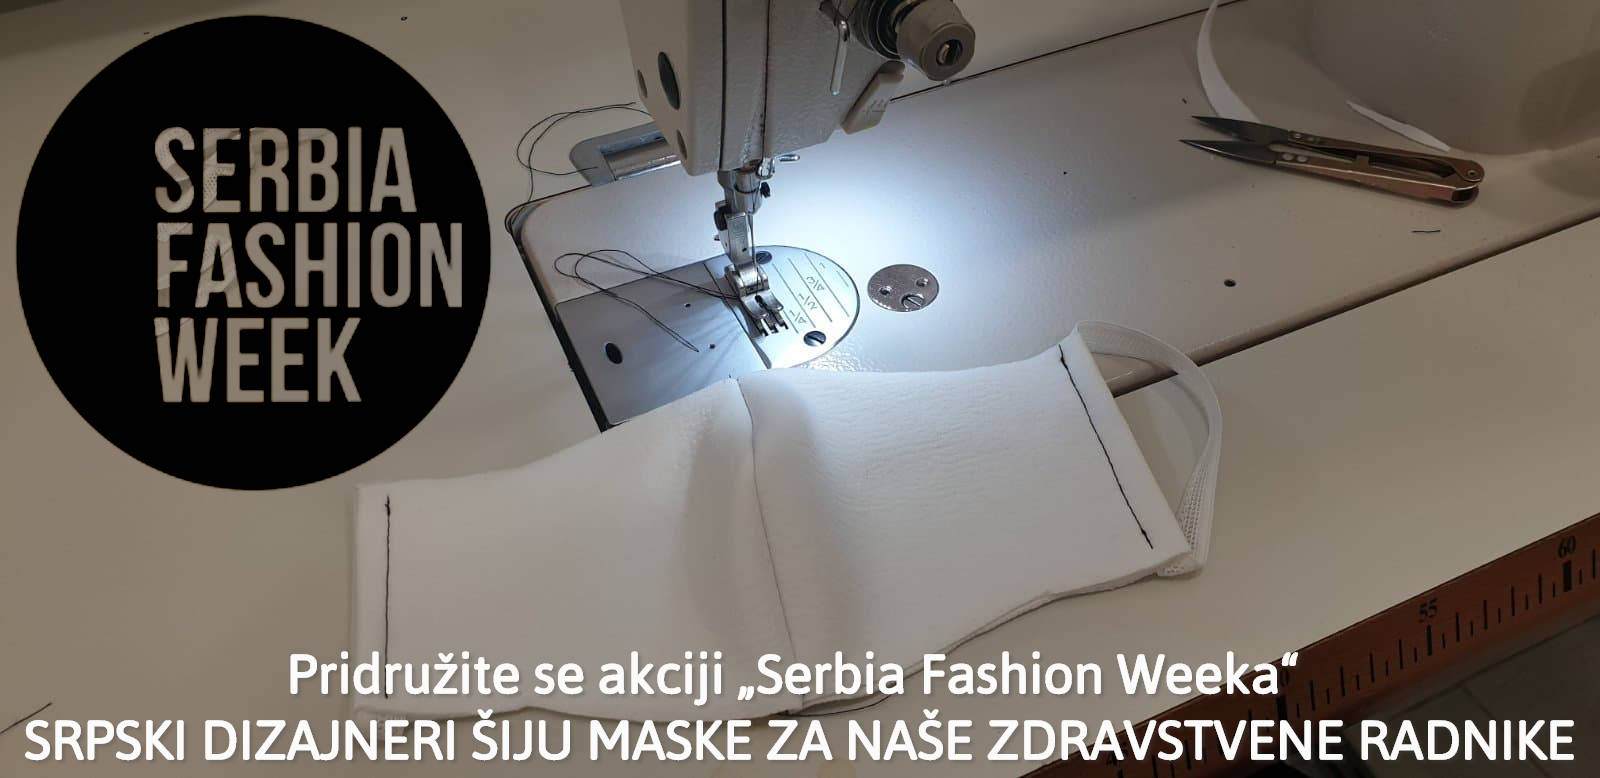 Serbia Fashion Week.jpg